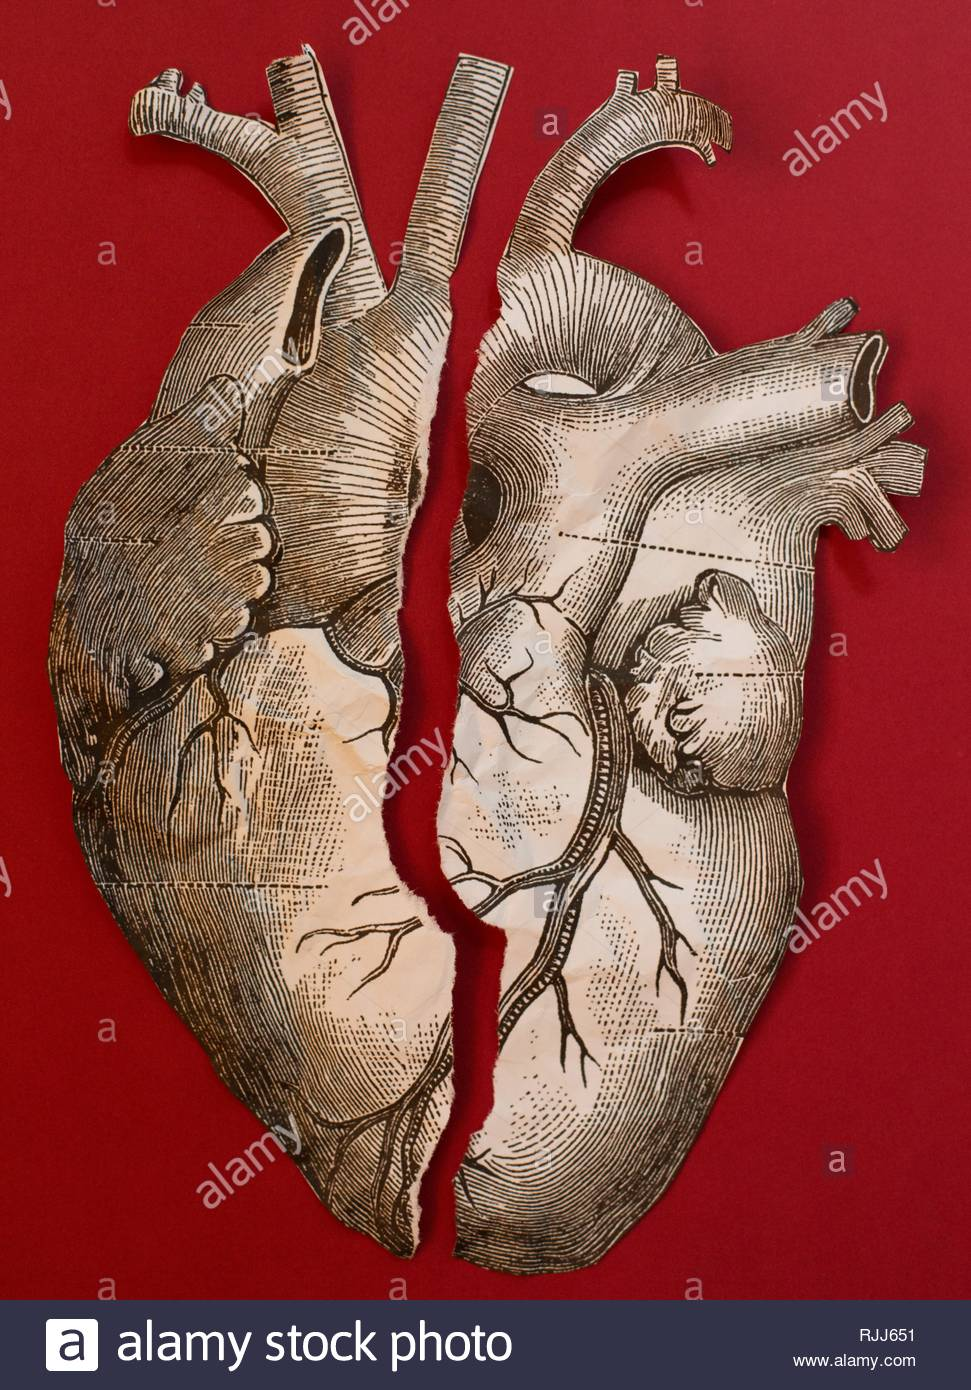 A vintage style anatomical heart illustration, crumpled and torn. - Stock Image